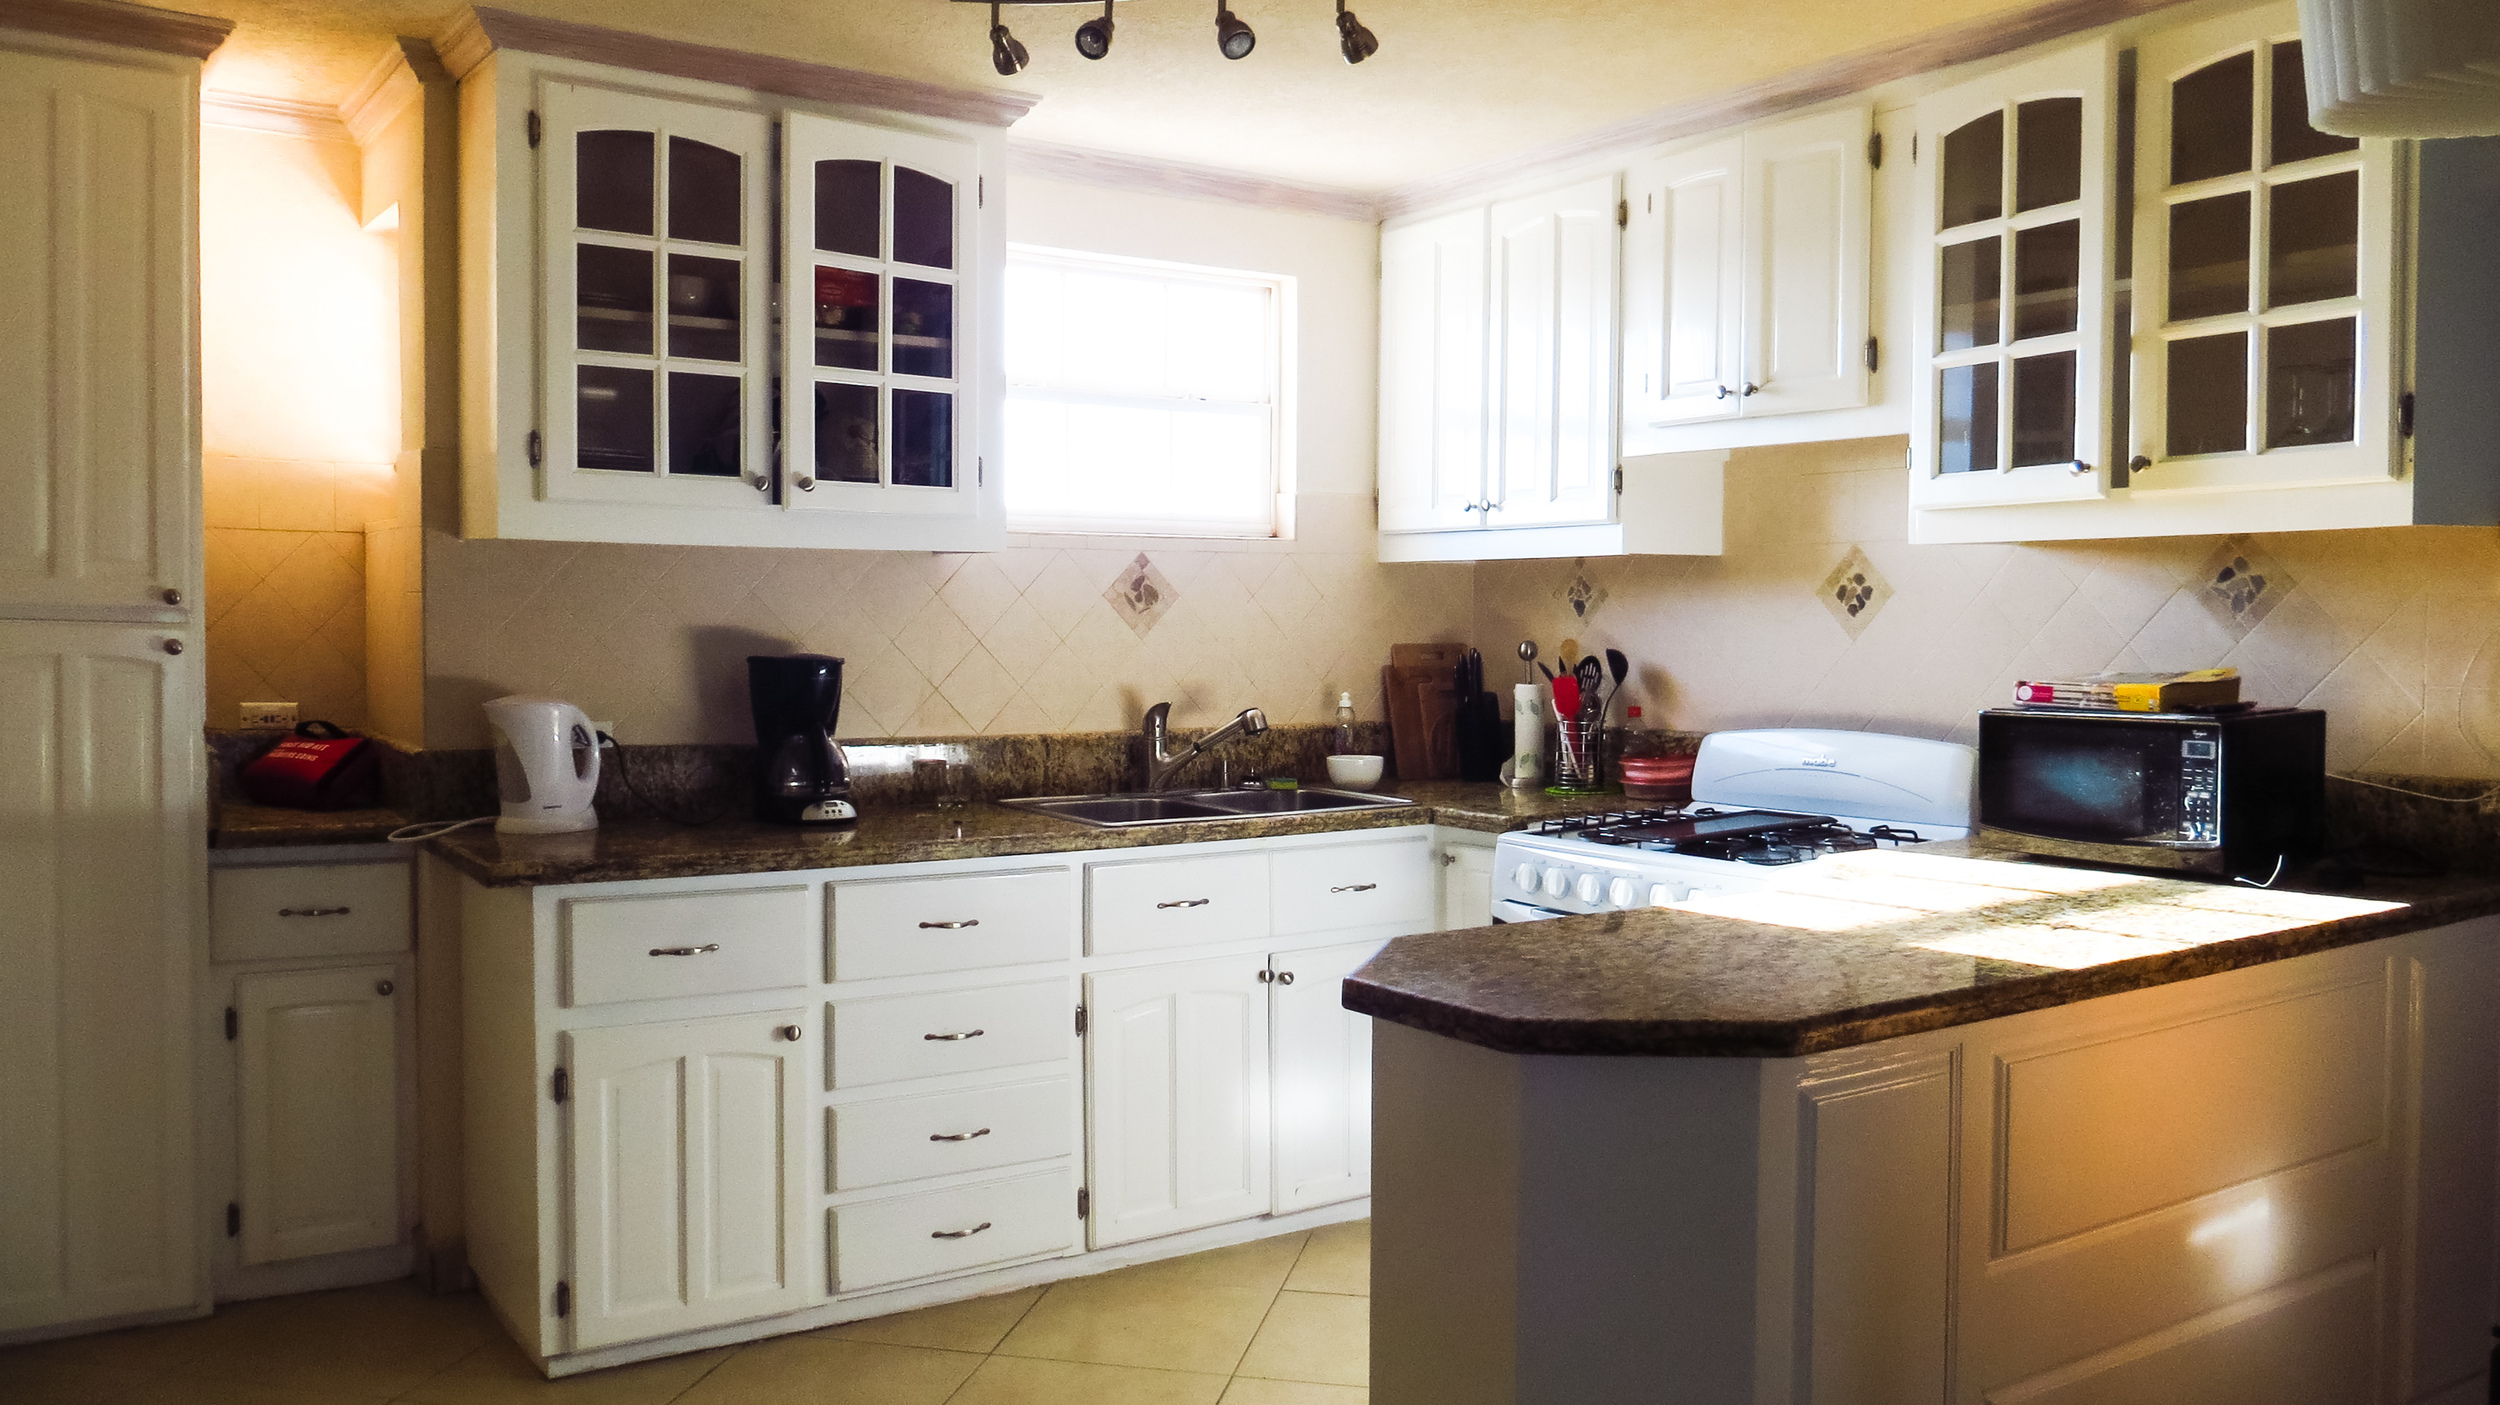 The well-appointed kitchen.